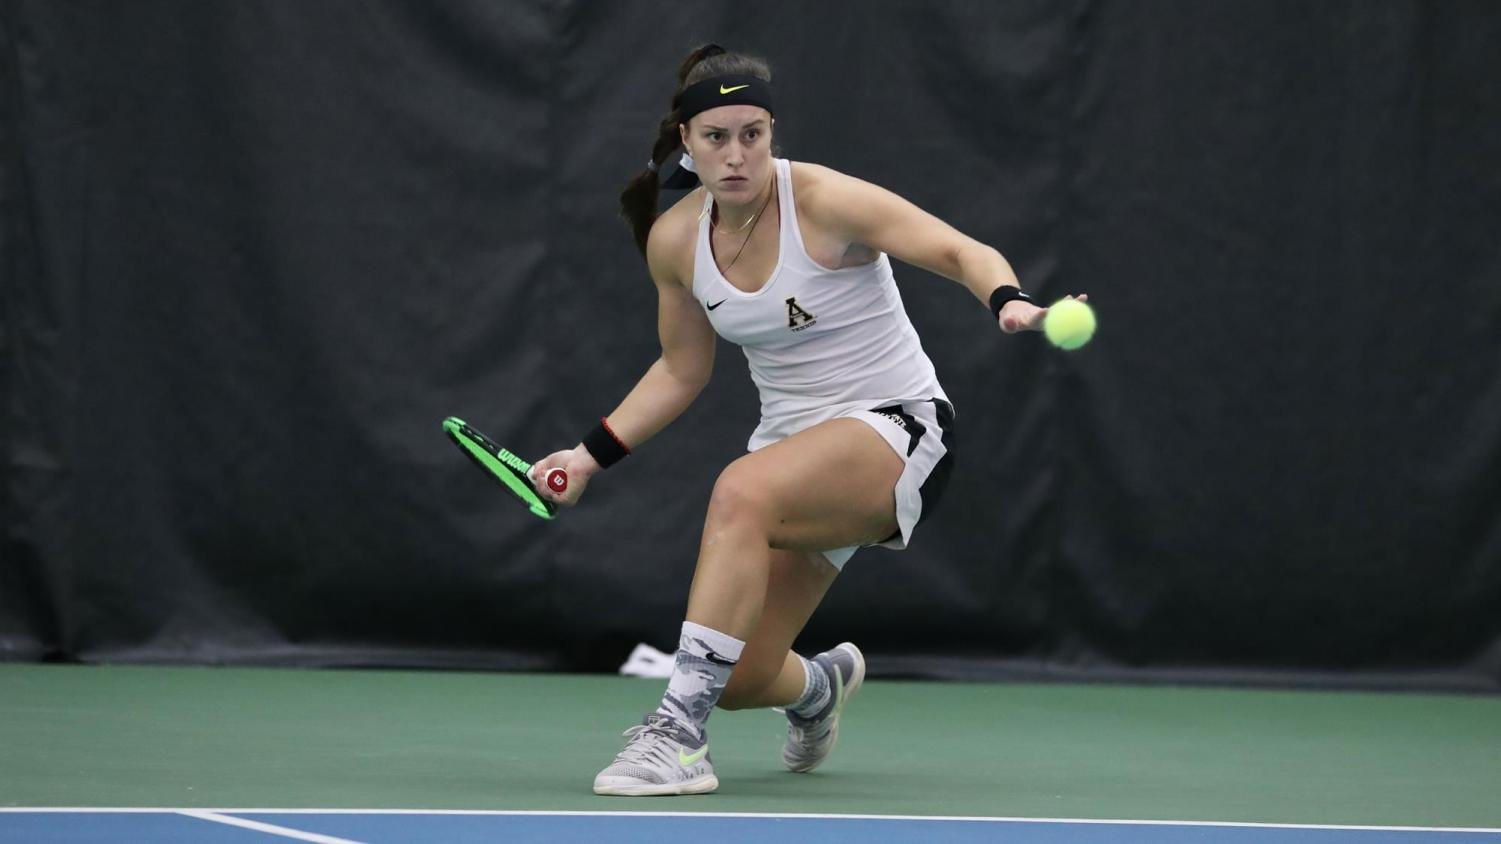 Junior Teodora Sevo in action during a match last year. Sevo and the Mountaineers look to build off of what they accomplished a season ago.